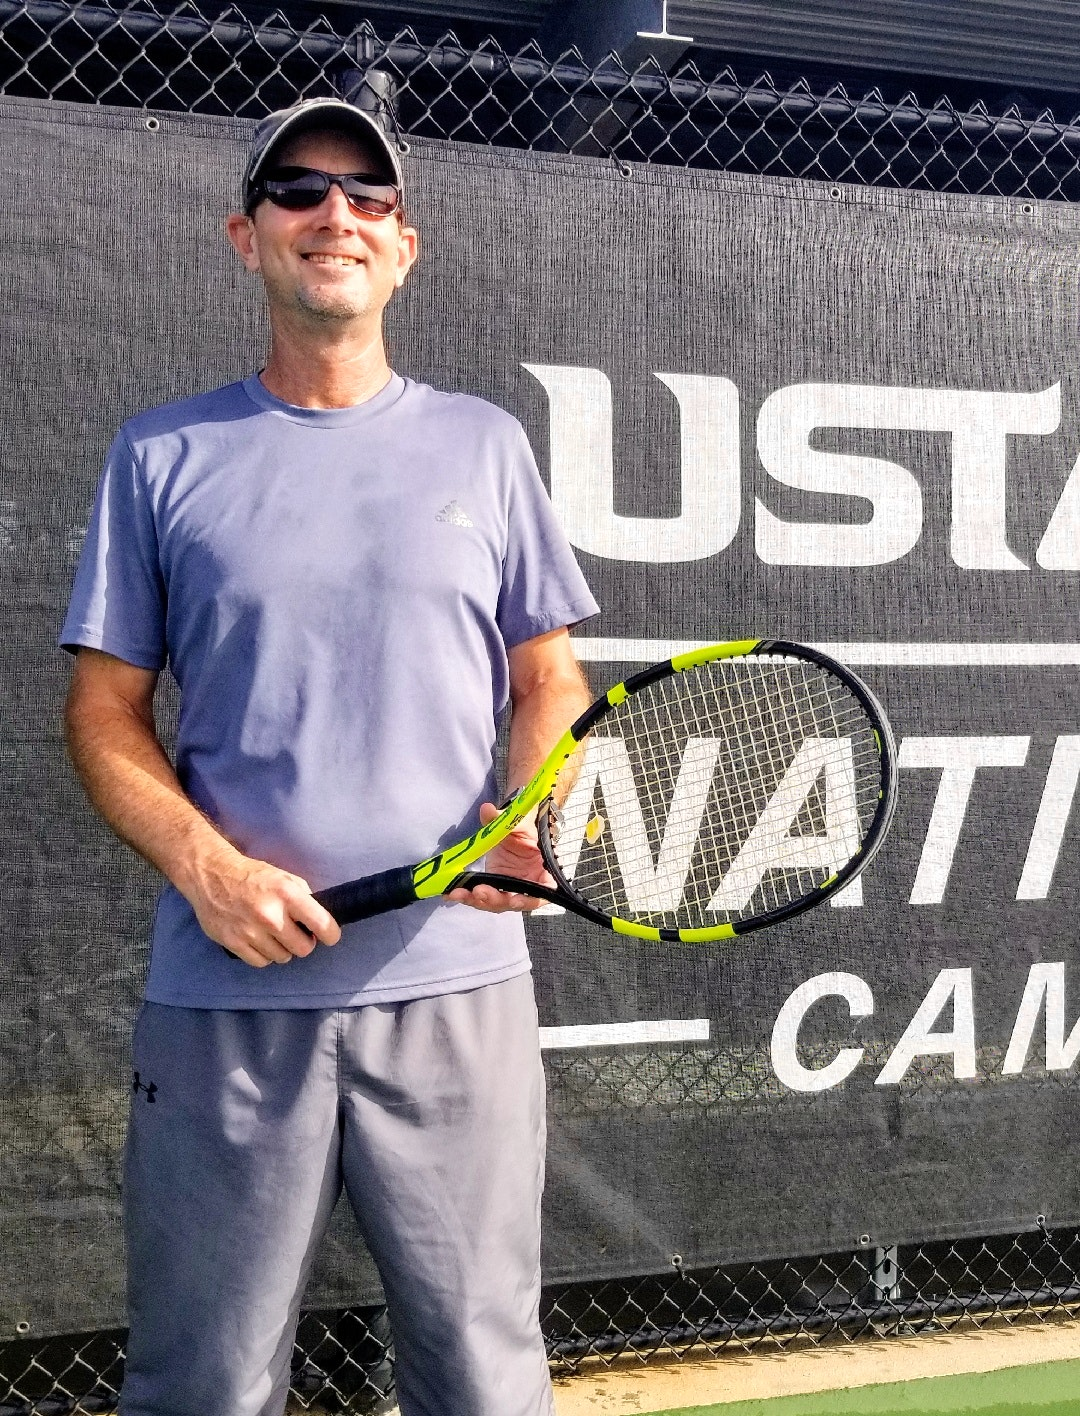 Kevin C. teaches tennis lessons in Casselberry, FL